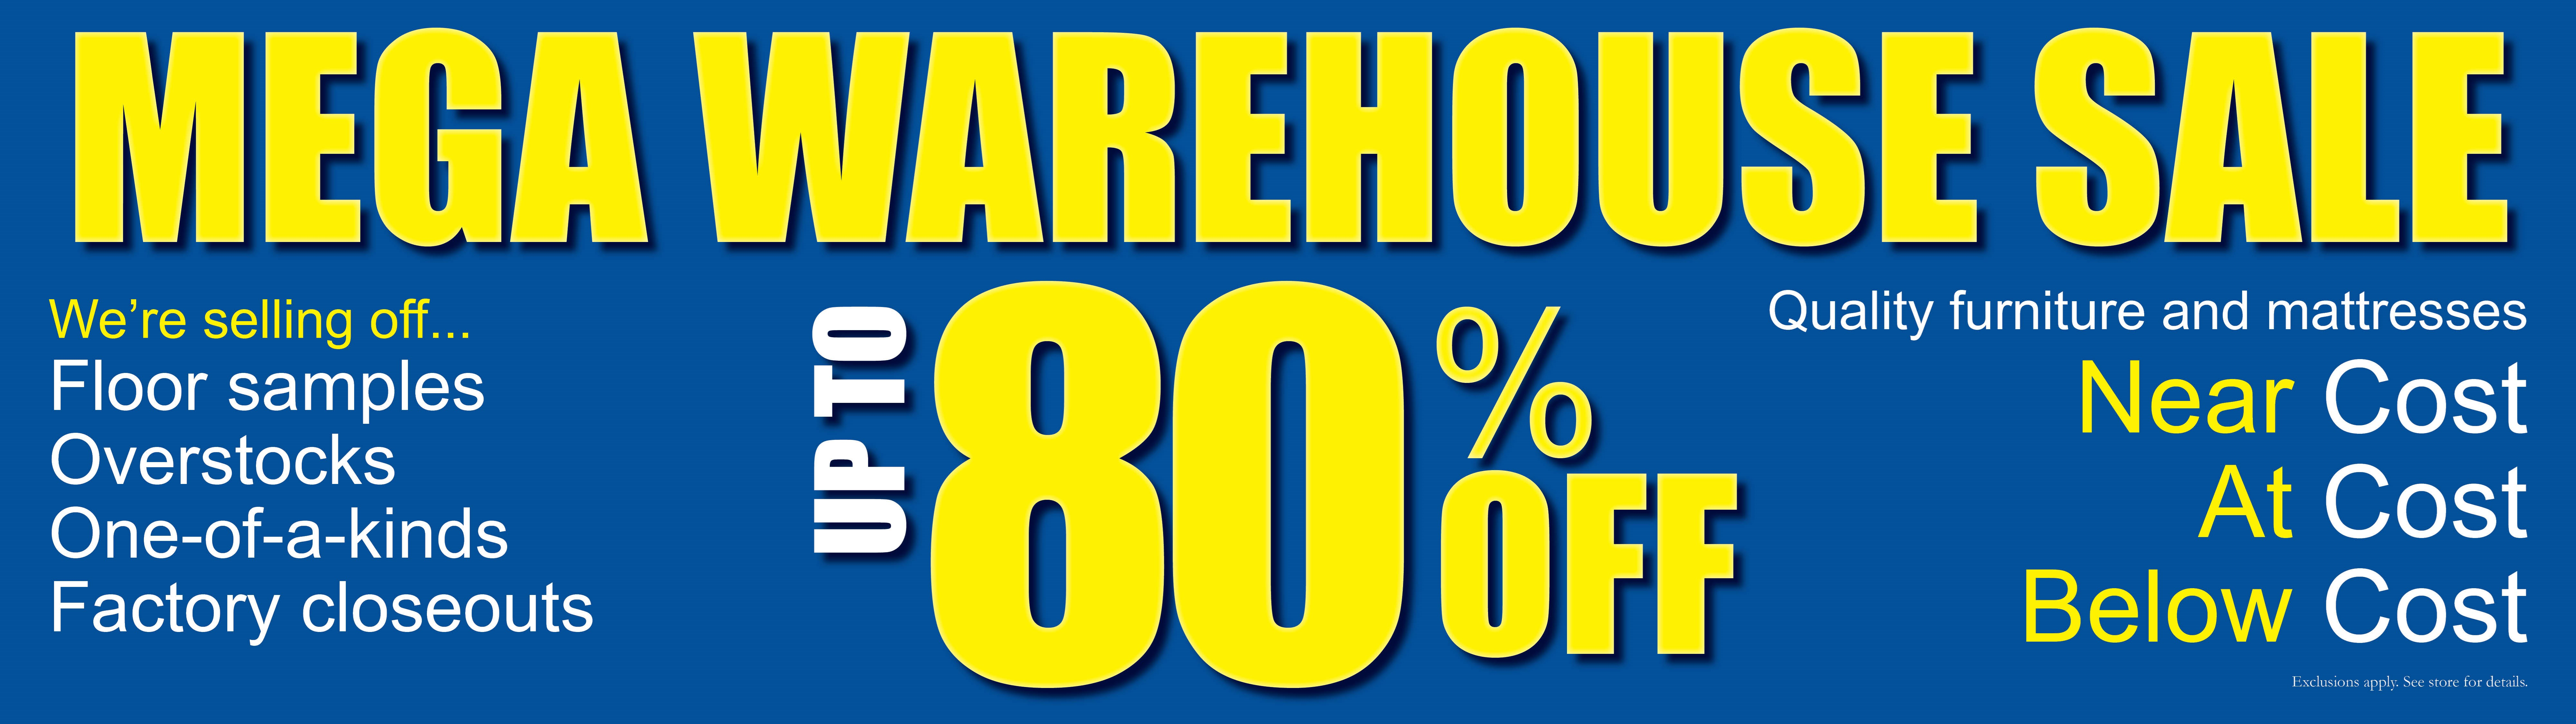 Warehouse sale, Mattress, Sale, Deal, Rooms and Rest, Furniture